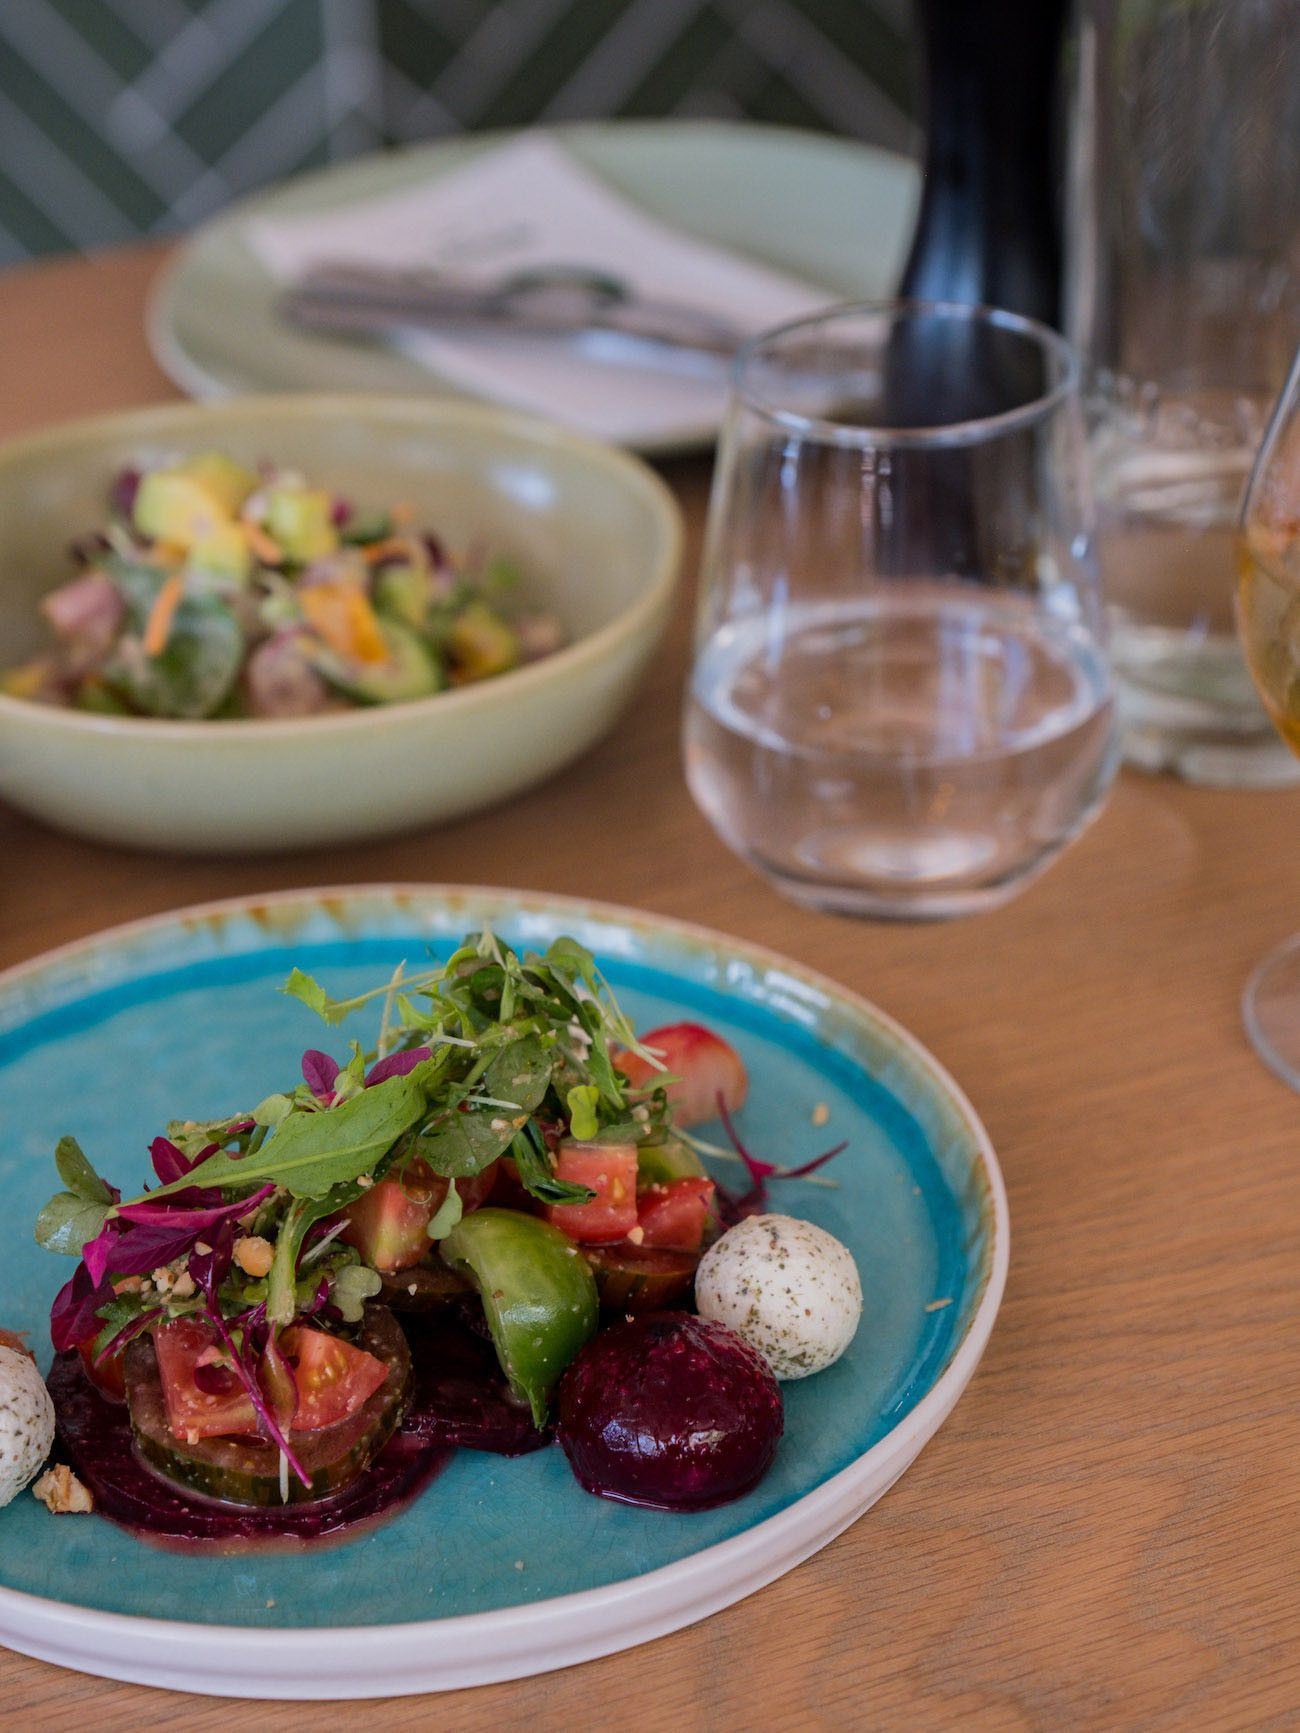 Weinguide Stellenbosch, The Green Goose Eatery, Rote Beete, Vorspeise, Salat